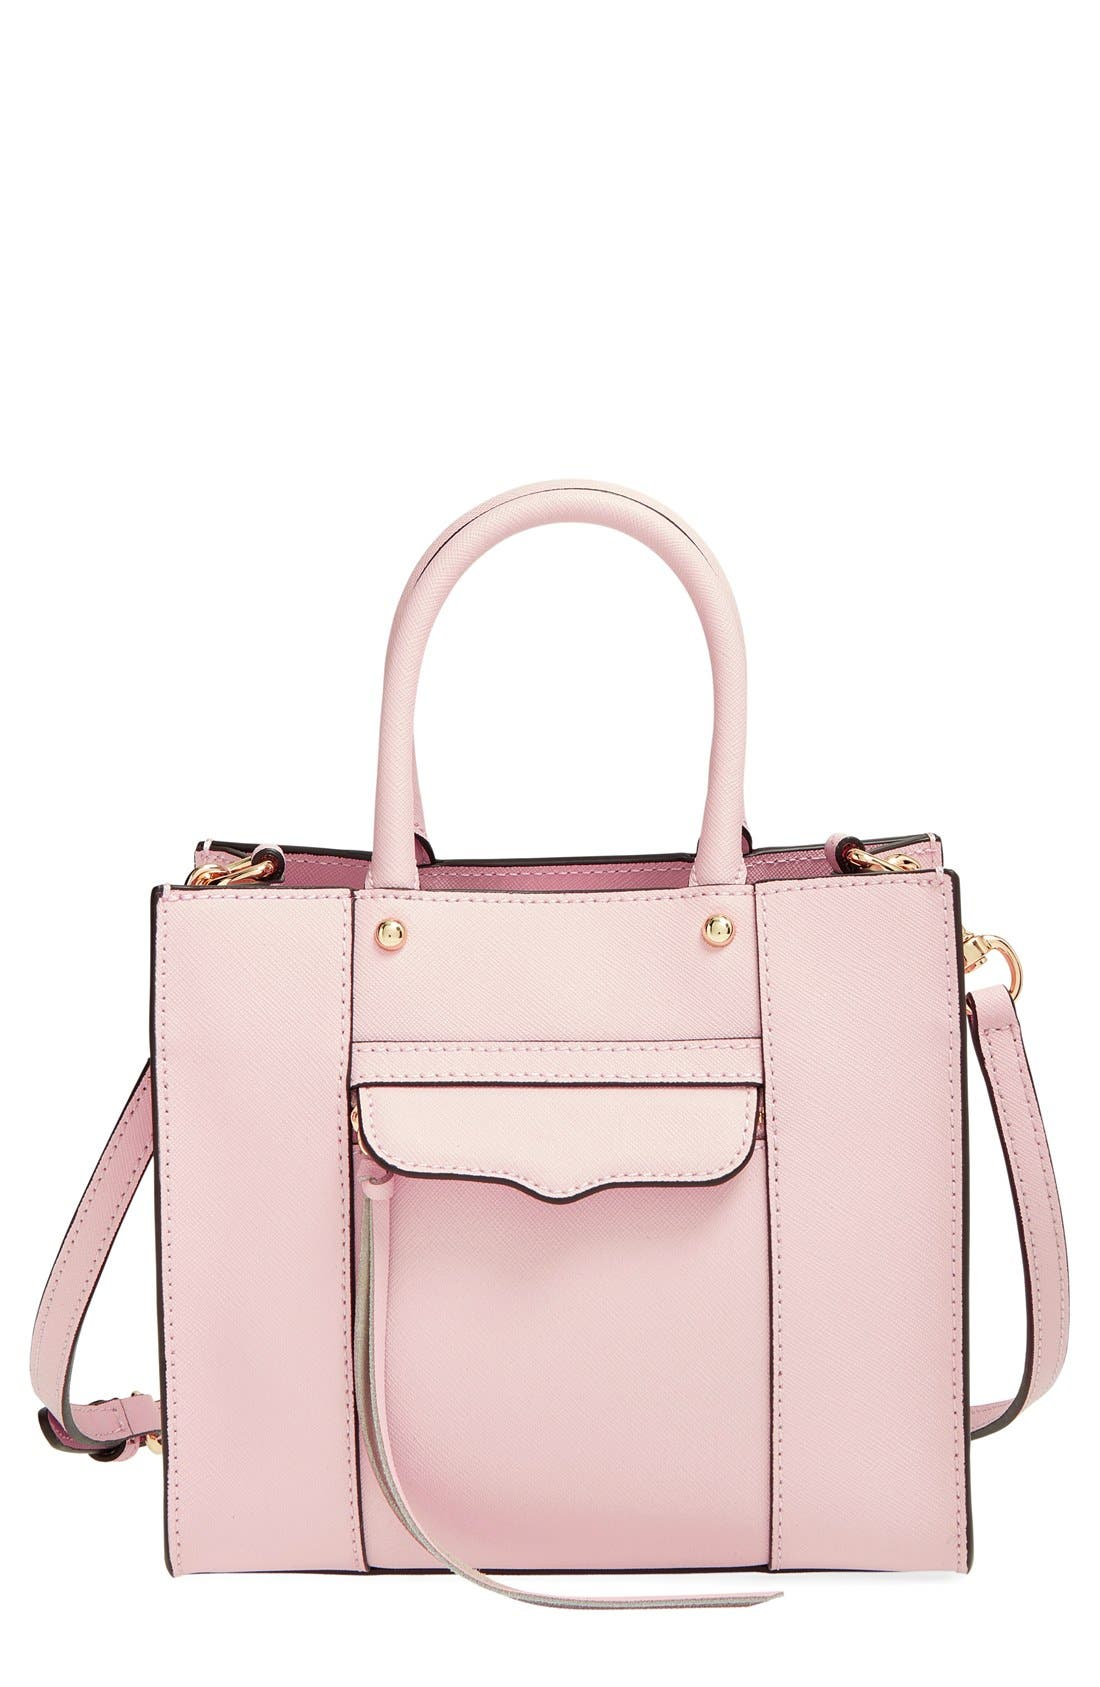 'Mini MAB Tote' Crossbody Bag,                             Main thumbnail 39, color,